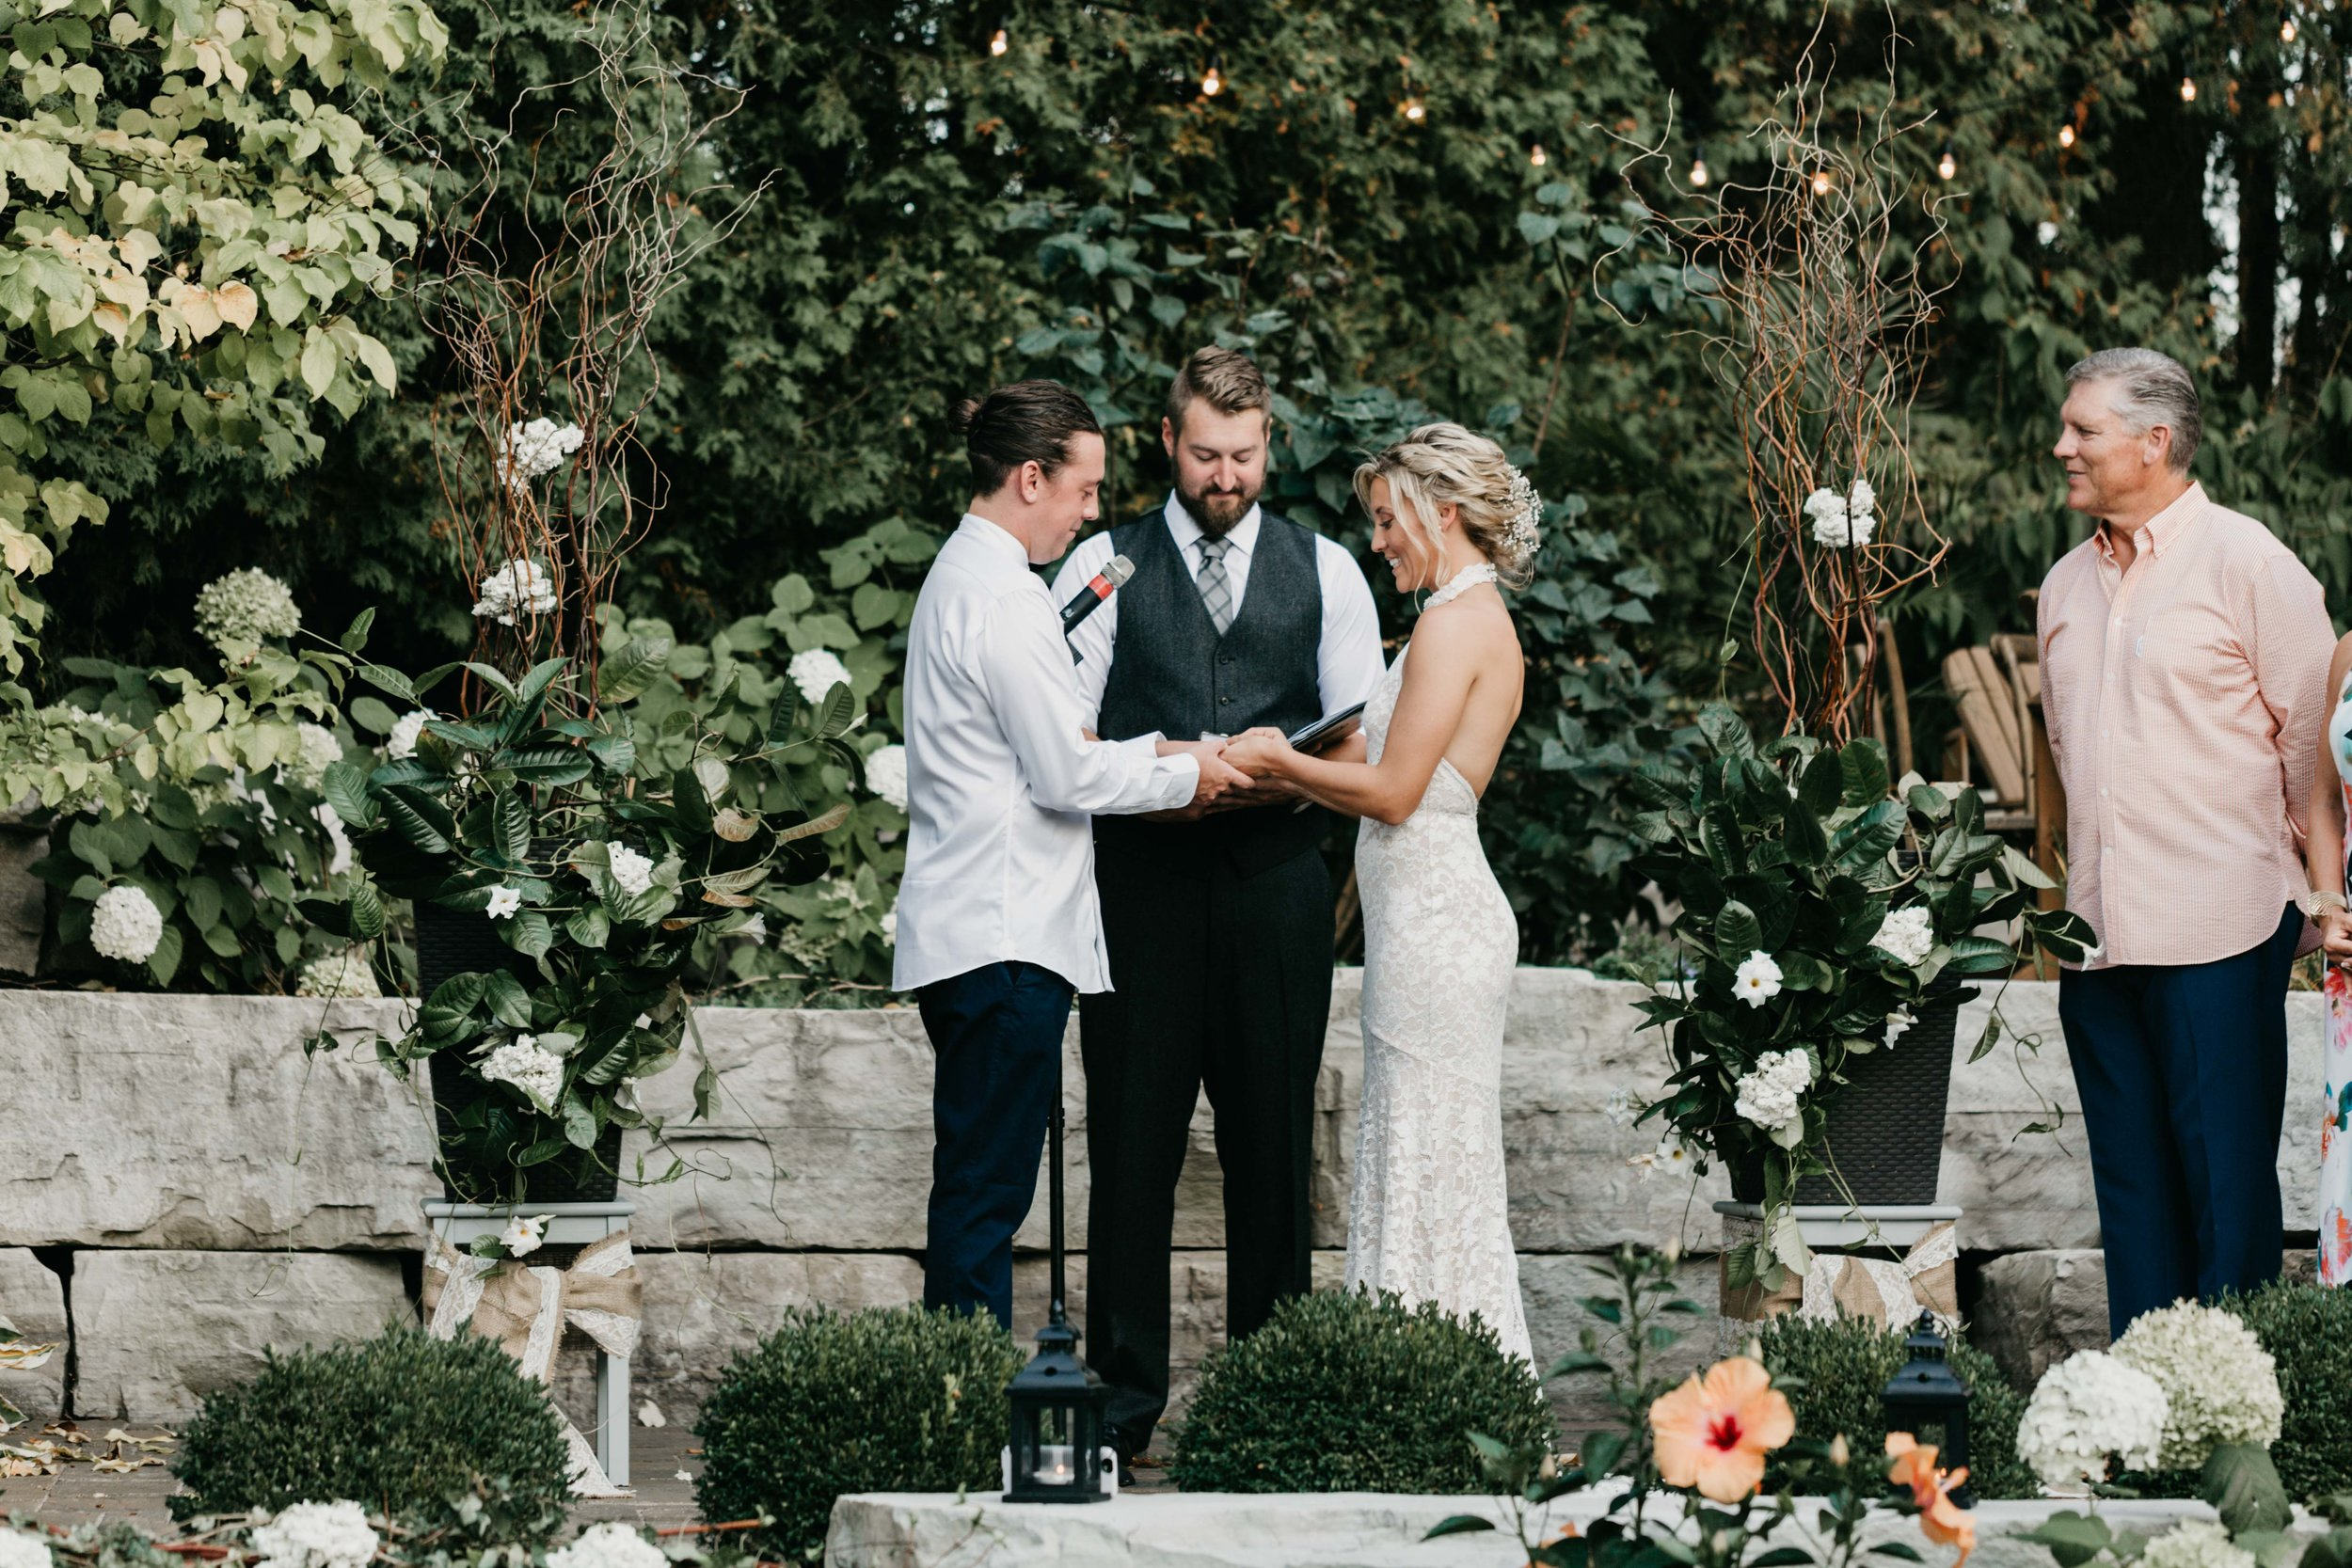 Intimate Outdoor Backyard Wedding Ancaster Ontario-173.jpg